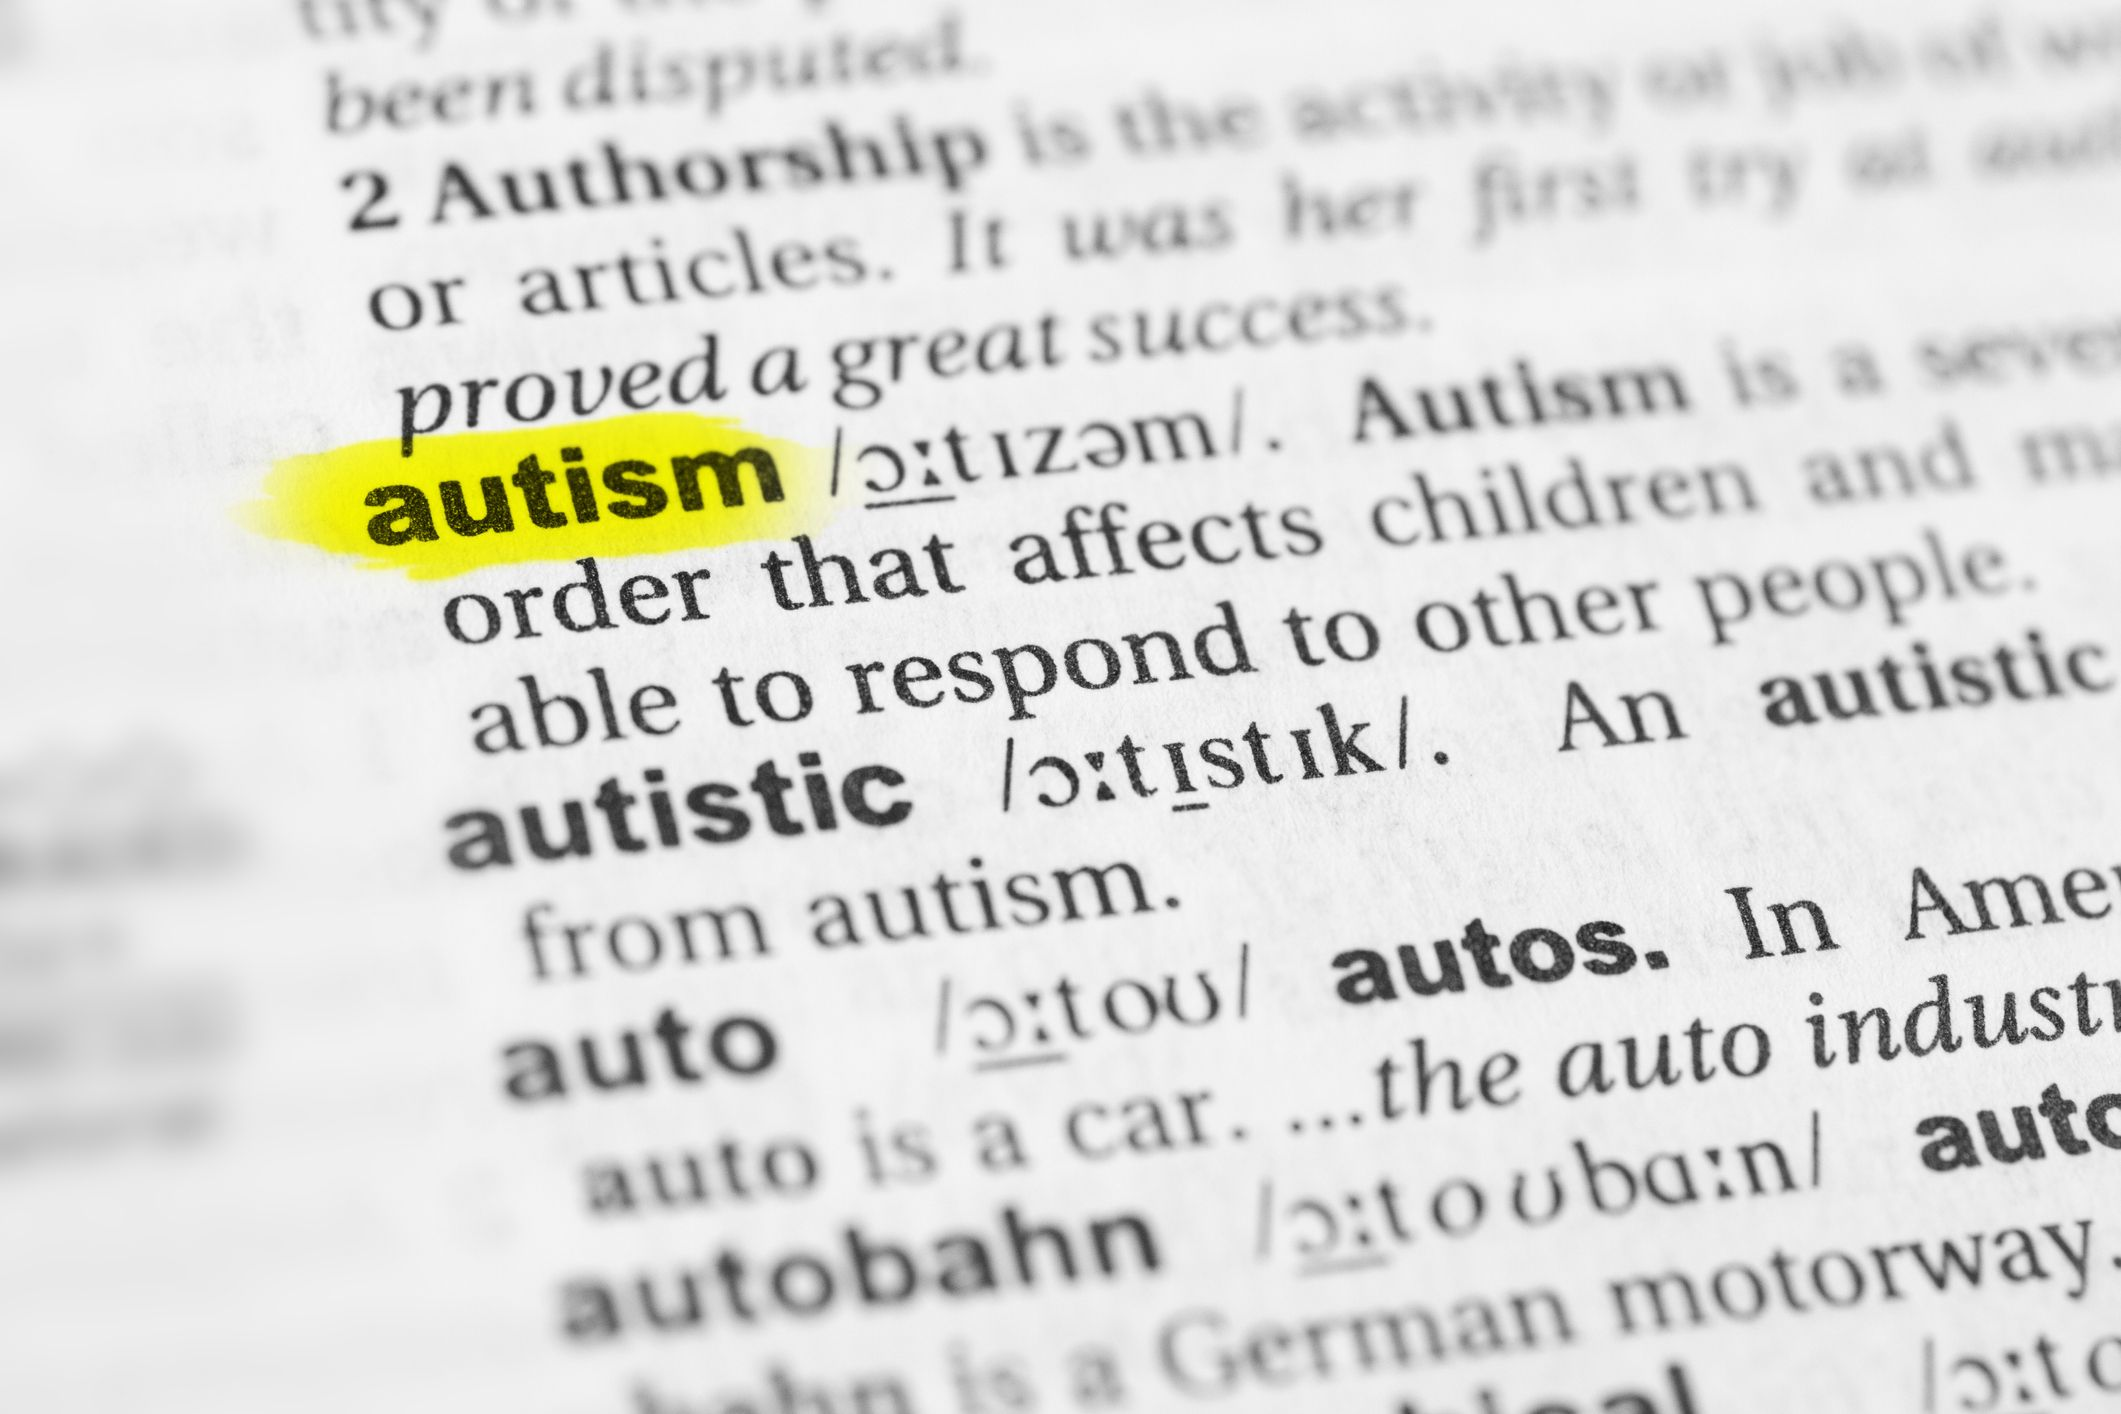 Brains Of Women With Autism May Sport >> Extreme Male Brain Theory Of Autism Confirmed In Major New Study